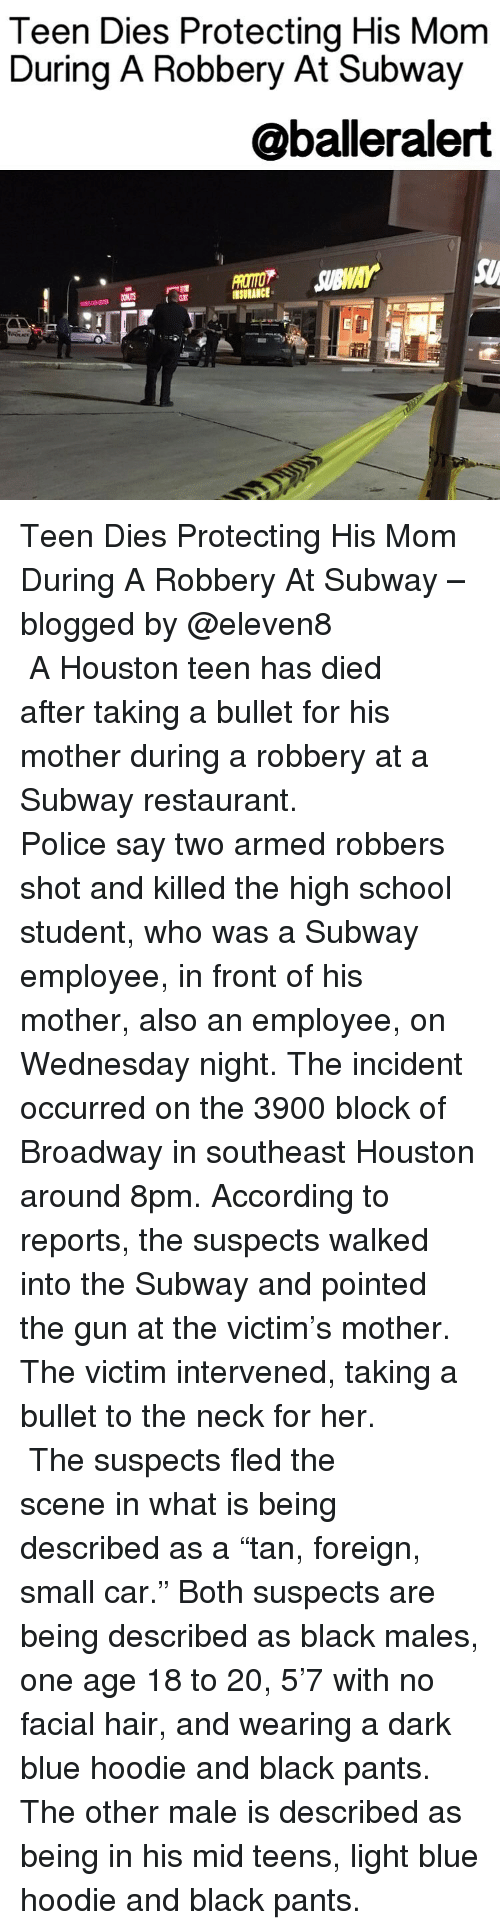 """accordance: Teen Dies Protecting His Mom  During A Robbery At Subway  @balleralert Teen Dies Protecting His Mom During A Robbery At Subway – blogged by @eleven8 ⠀⠀⠀⠀⠀⠀⠀⠀⠀ ⠀⠀⠀⠀⠀⠀⠀⠀⠀ A Houston teen has died after taking a bullet for his mother during a robbery at a Subway restaurant. ⠀⠀⠀⠀⠀⠀⠀⠀⠀ ⠀⠀⠀⠀⠀⠀⠀⠀⠀ Police say two armed robbers shot and killed the high school student, who was a Subway employee, in front of his mother, also an employee, on Wednesday night. The incident occurred on the 3900 block of Broadway in southeast Houston around 8pm. According to reports, the suspects walked into the Subway and pointed the gun at the victim's mother. The victim intervened, taking a bullet to the neck for her. ⠀⠀⠀⠀⠀⠀⠀⠀⠀ ⠀⠀⠀⠀⠀⠀⠀⠀⠀ The suspects fled the scene in what is being described as a """"tan, foreign, small car."""" Both suspects are being described as black males, one age 18 to 20, 5'7 with no facial hair, and wearing a dark blue hoodie and black pants. The other male is described as being in his mid teens, light blue hoodie and black pants."""